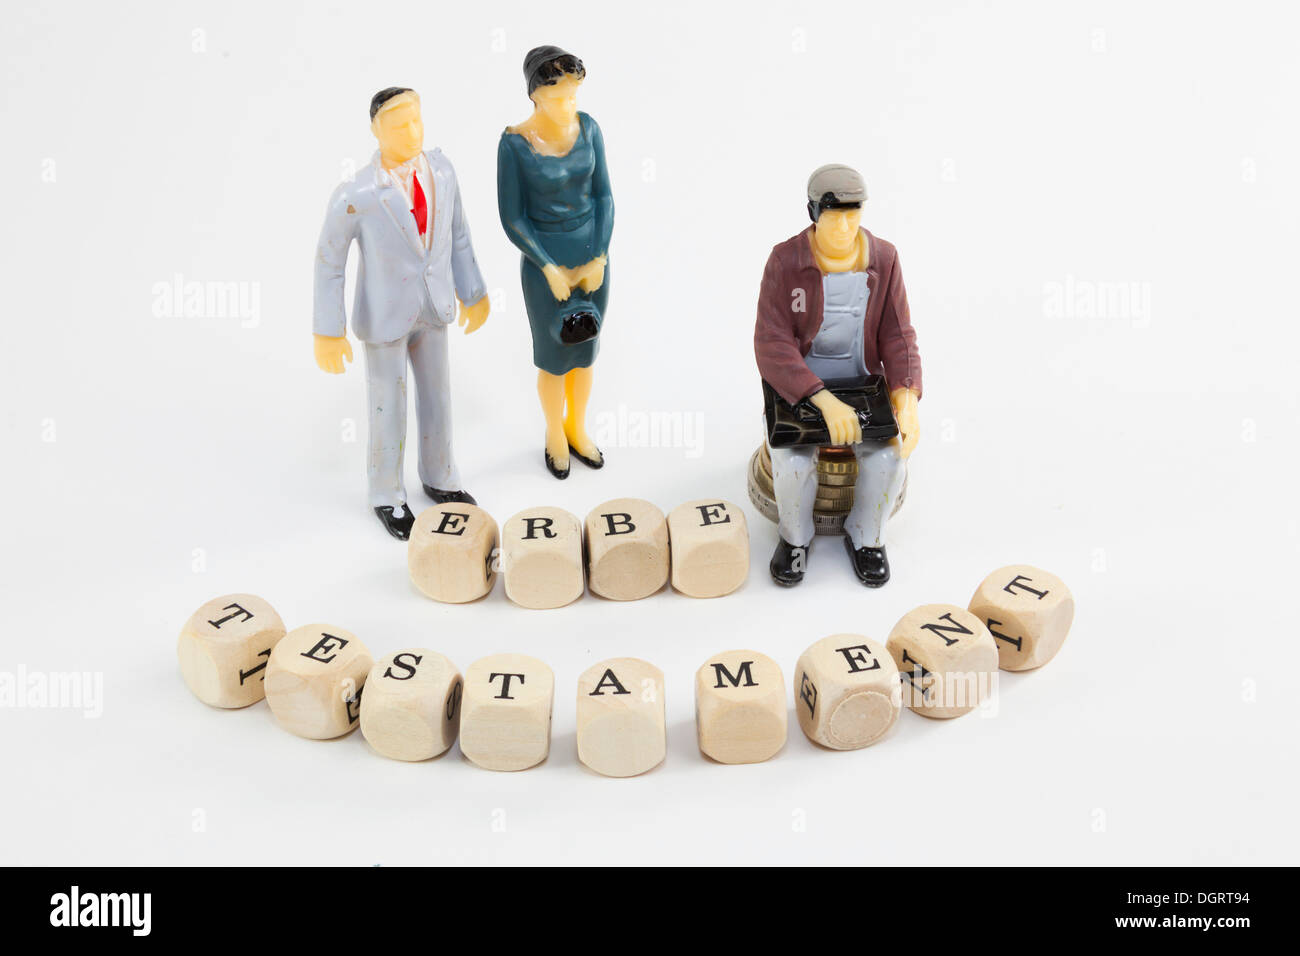 Miniature figures, letter cubes forming the word 'Erbe' and 'Testament', German for 'inheritance' and 'last will' - Stock Image